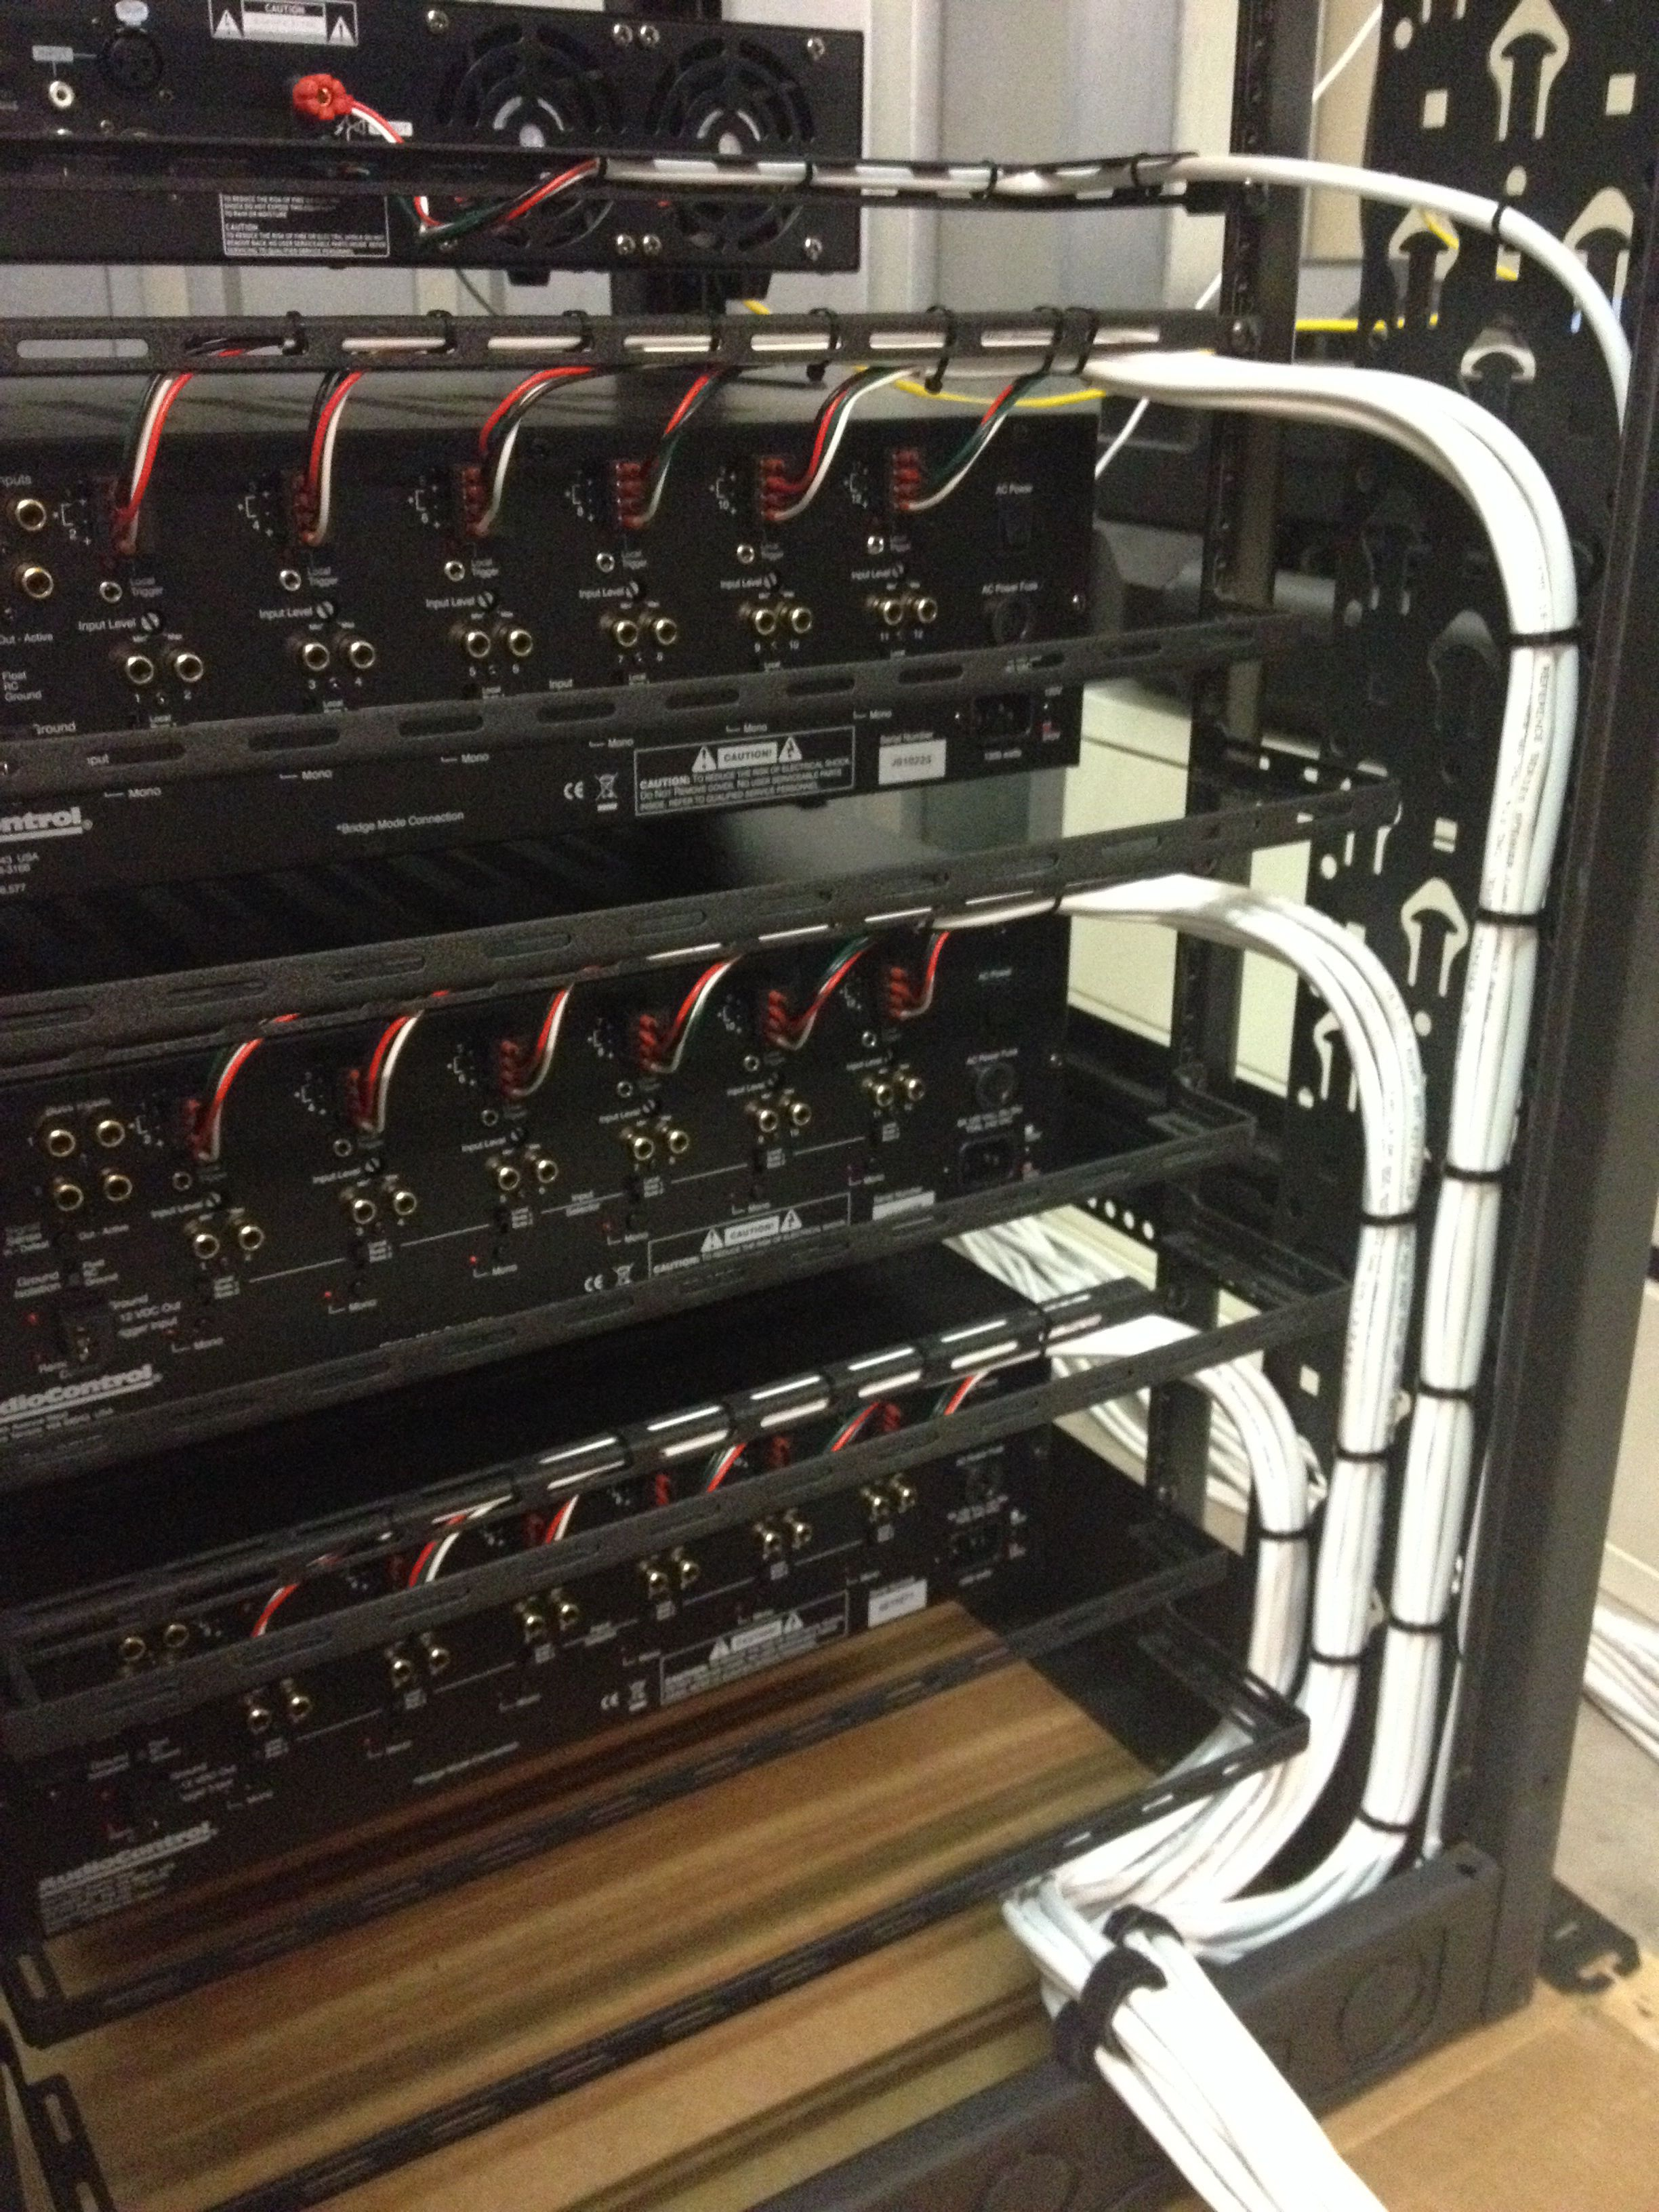 hight resolution of rear view of equipment rack housing audio distribution system showing speaker cabling installation